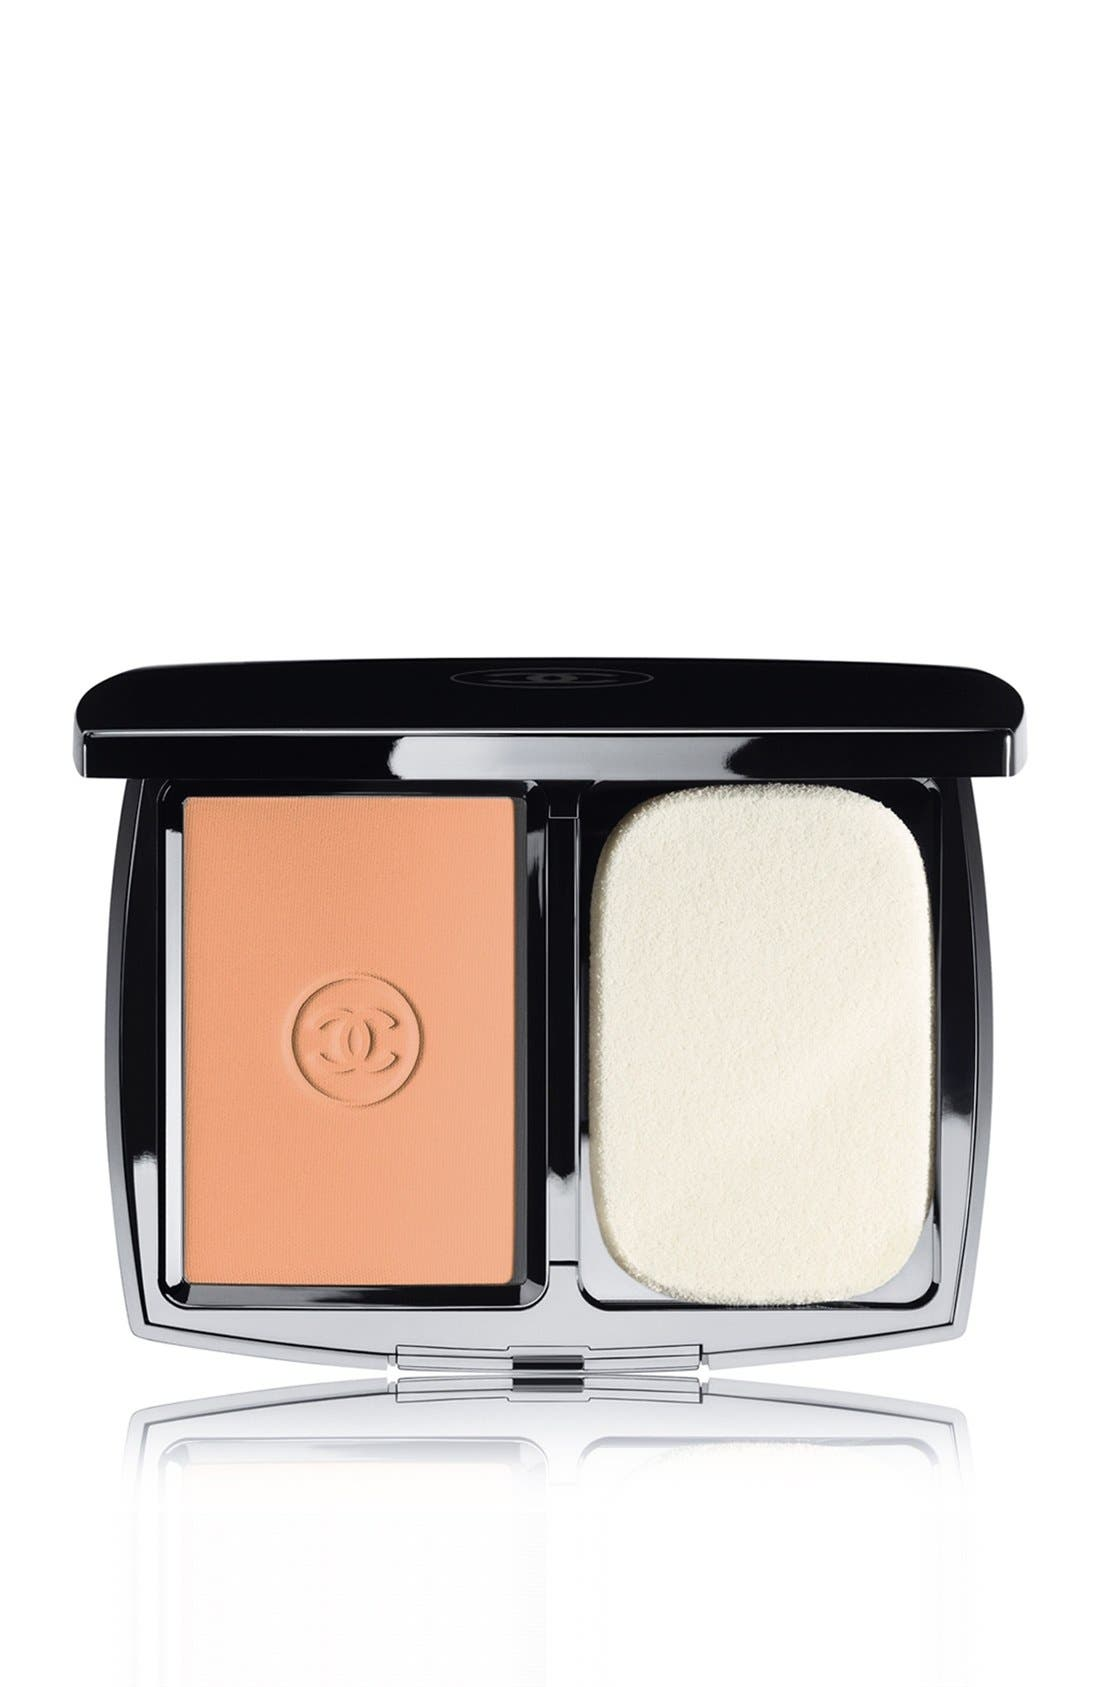 DOUBLE PERFECTION LUMIÈRE<br />Long-Wear Flawless Sunscreen Powder Makeup Broad Spectrum SPF 15,                             Main thumbnail 7, color,